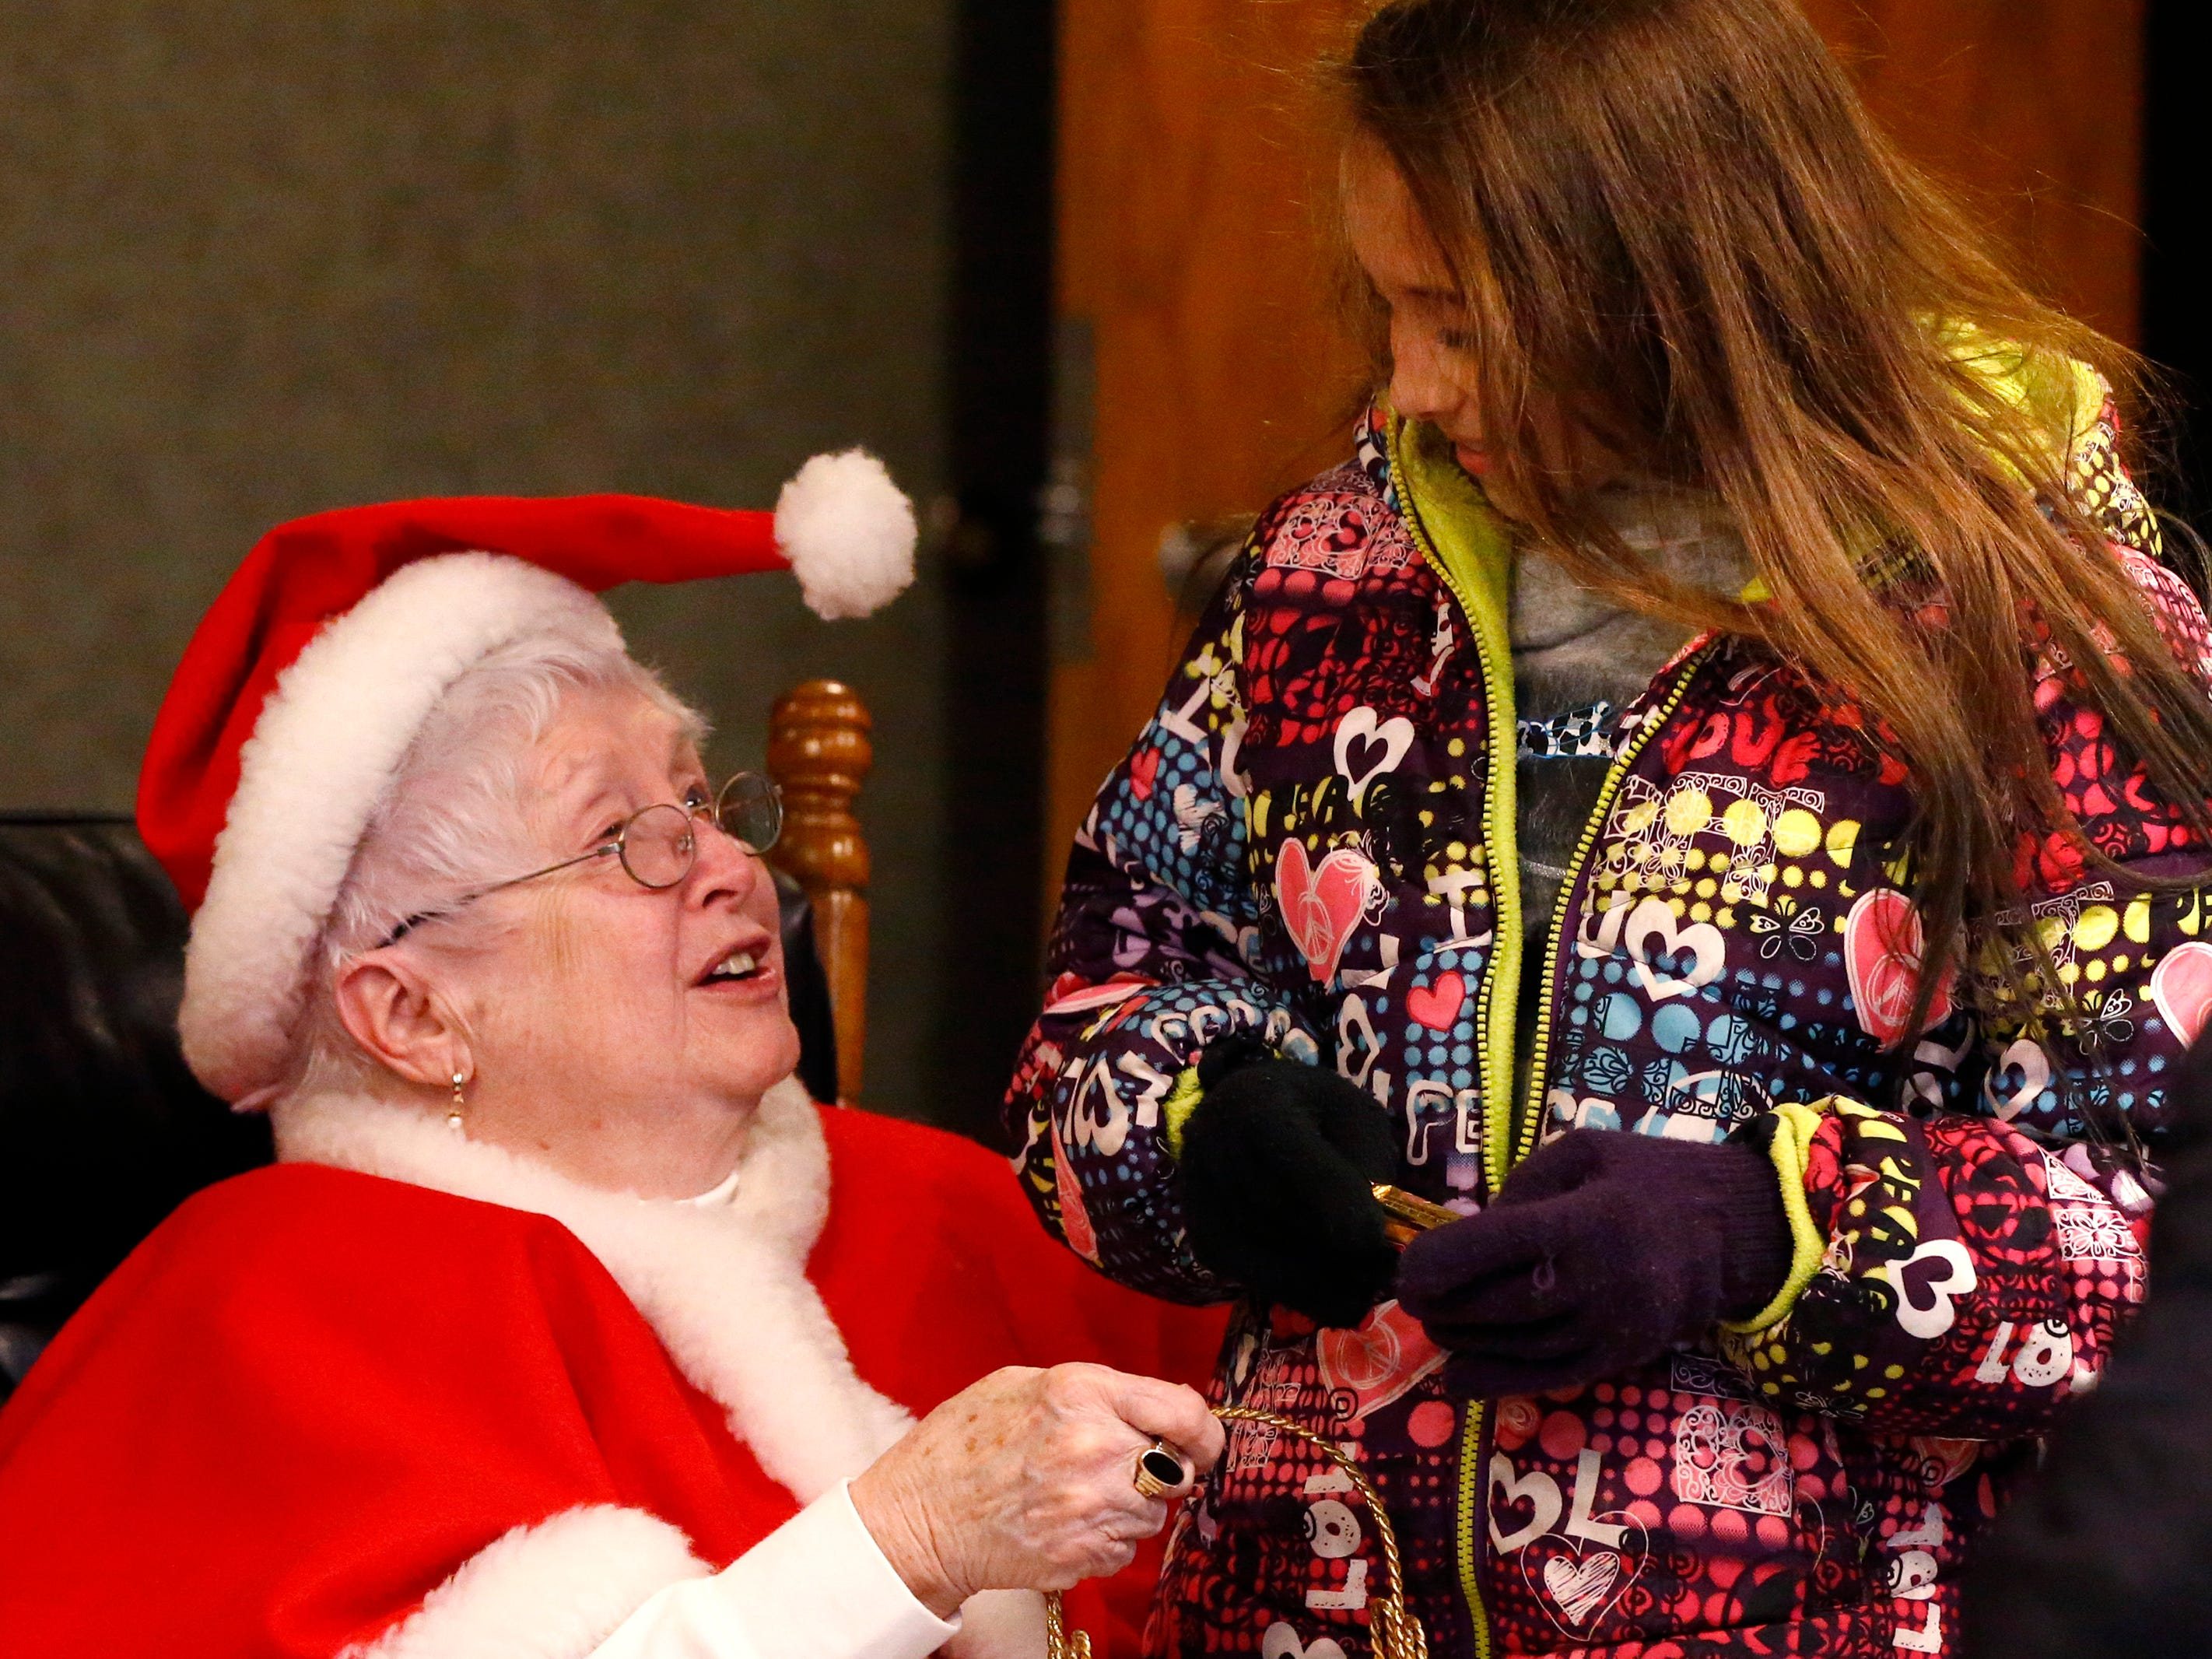 Ariana Schroeder, 12, talks with Mrs. Claus during South Milwaukee's Old Fashioned Christmas at City Hall on Nov. 24. A tree lighting and the first Lit Christmas Parade followed the gathering.